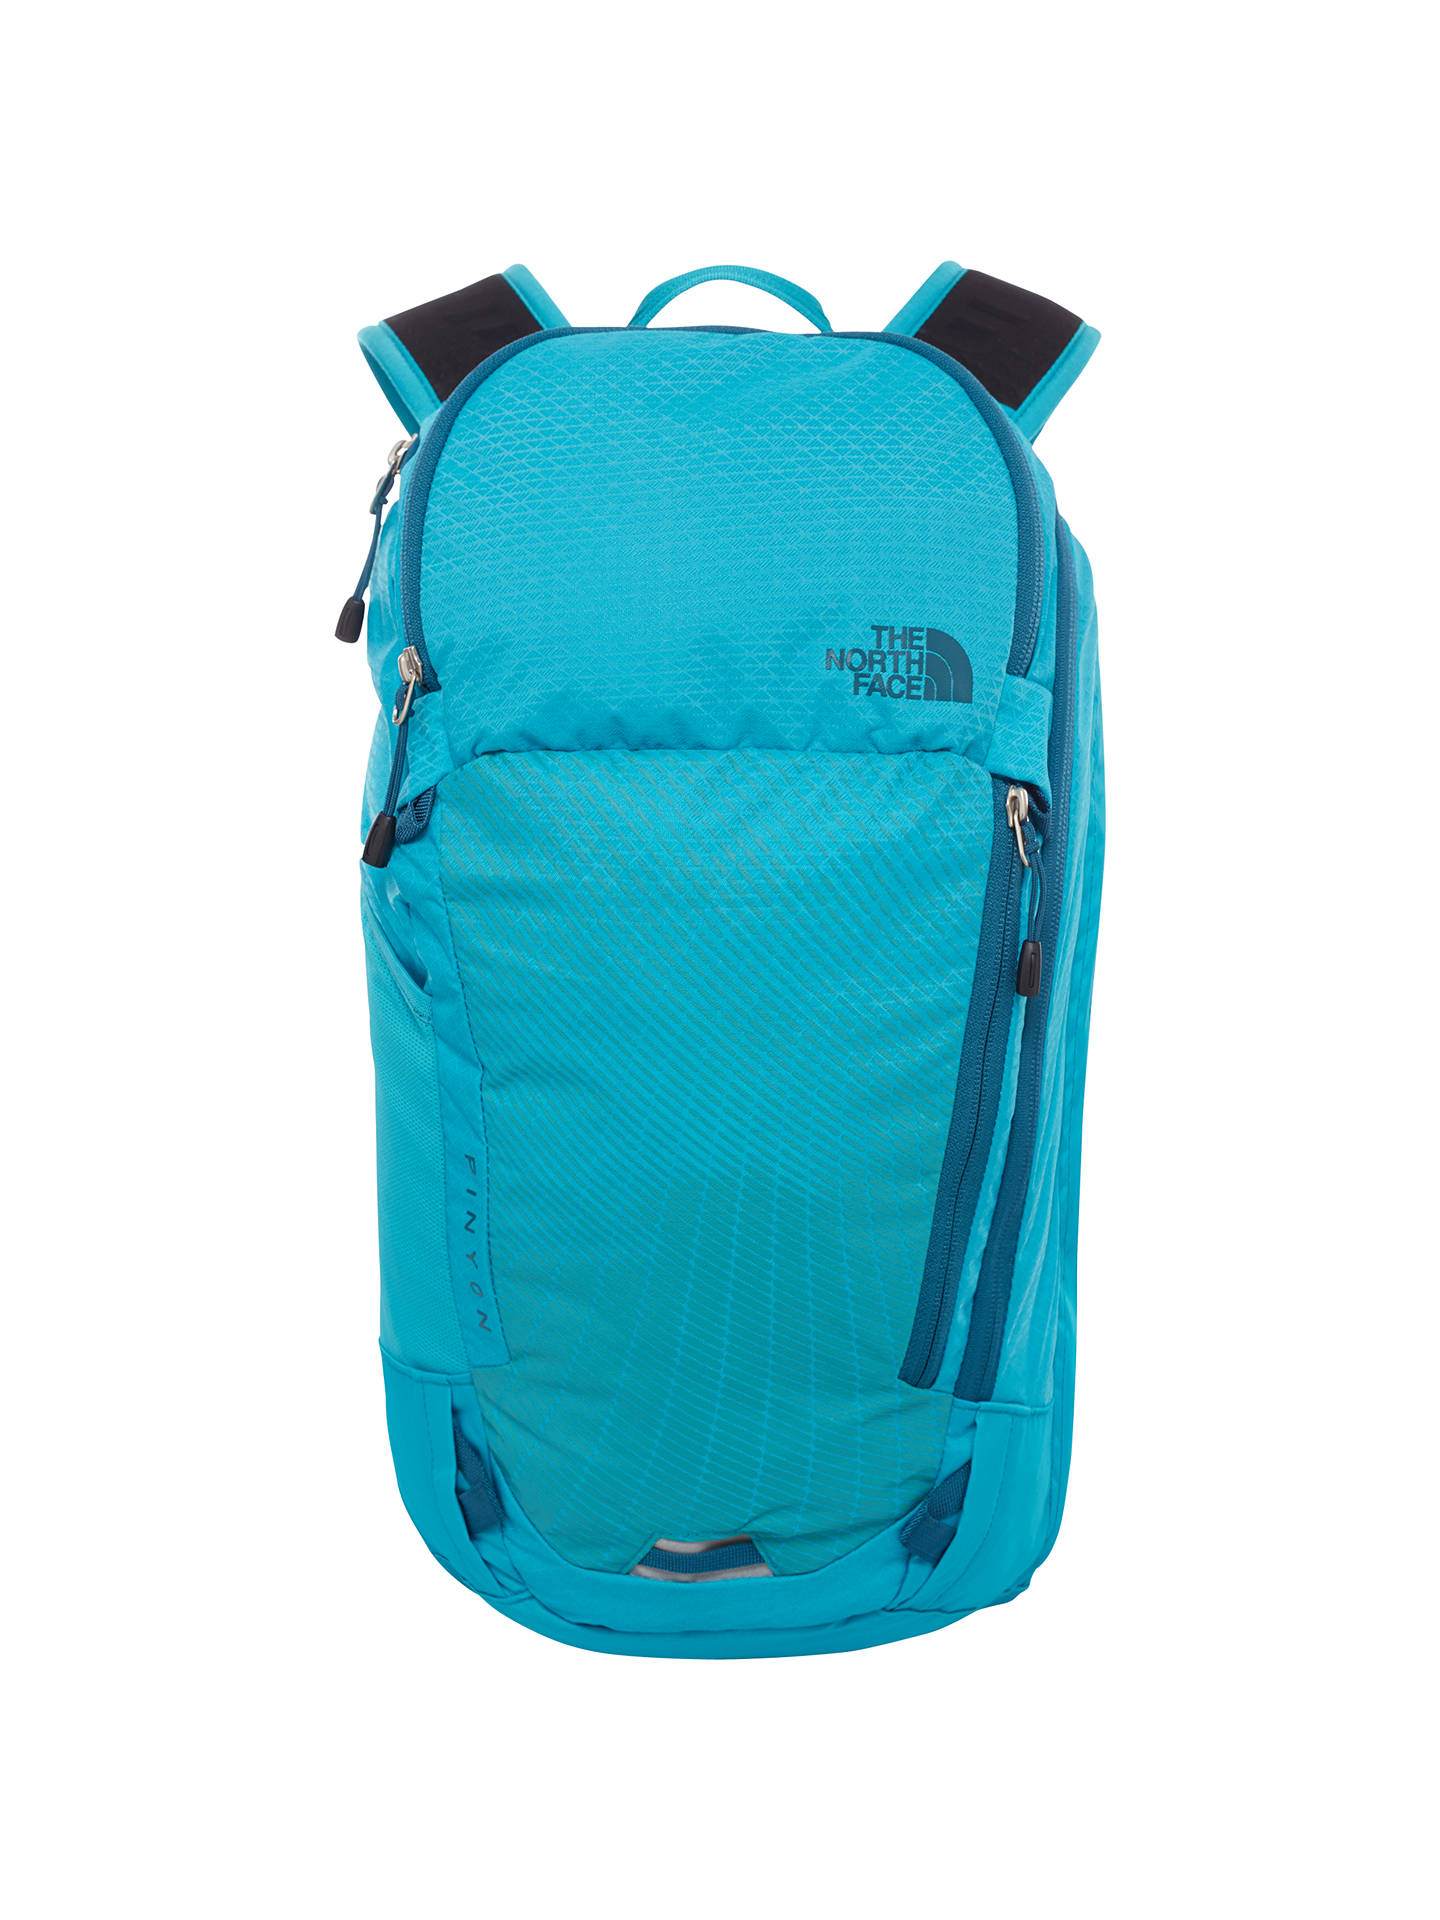 0a26eda88 The North Face Pinyon Women's Backpack, Blue at John Lewis & Partners